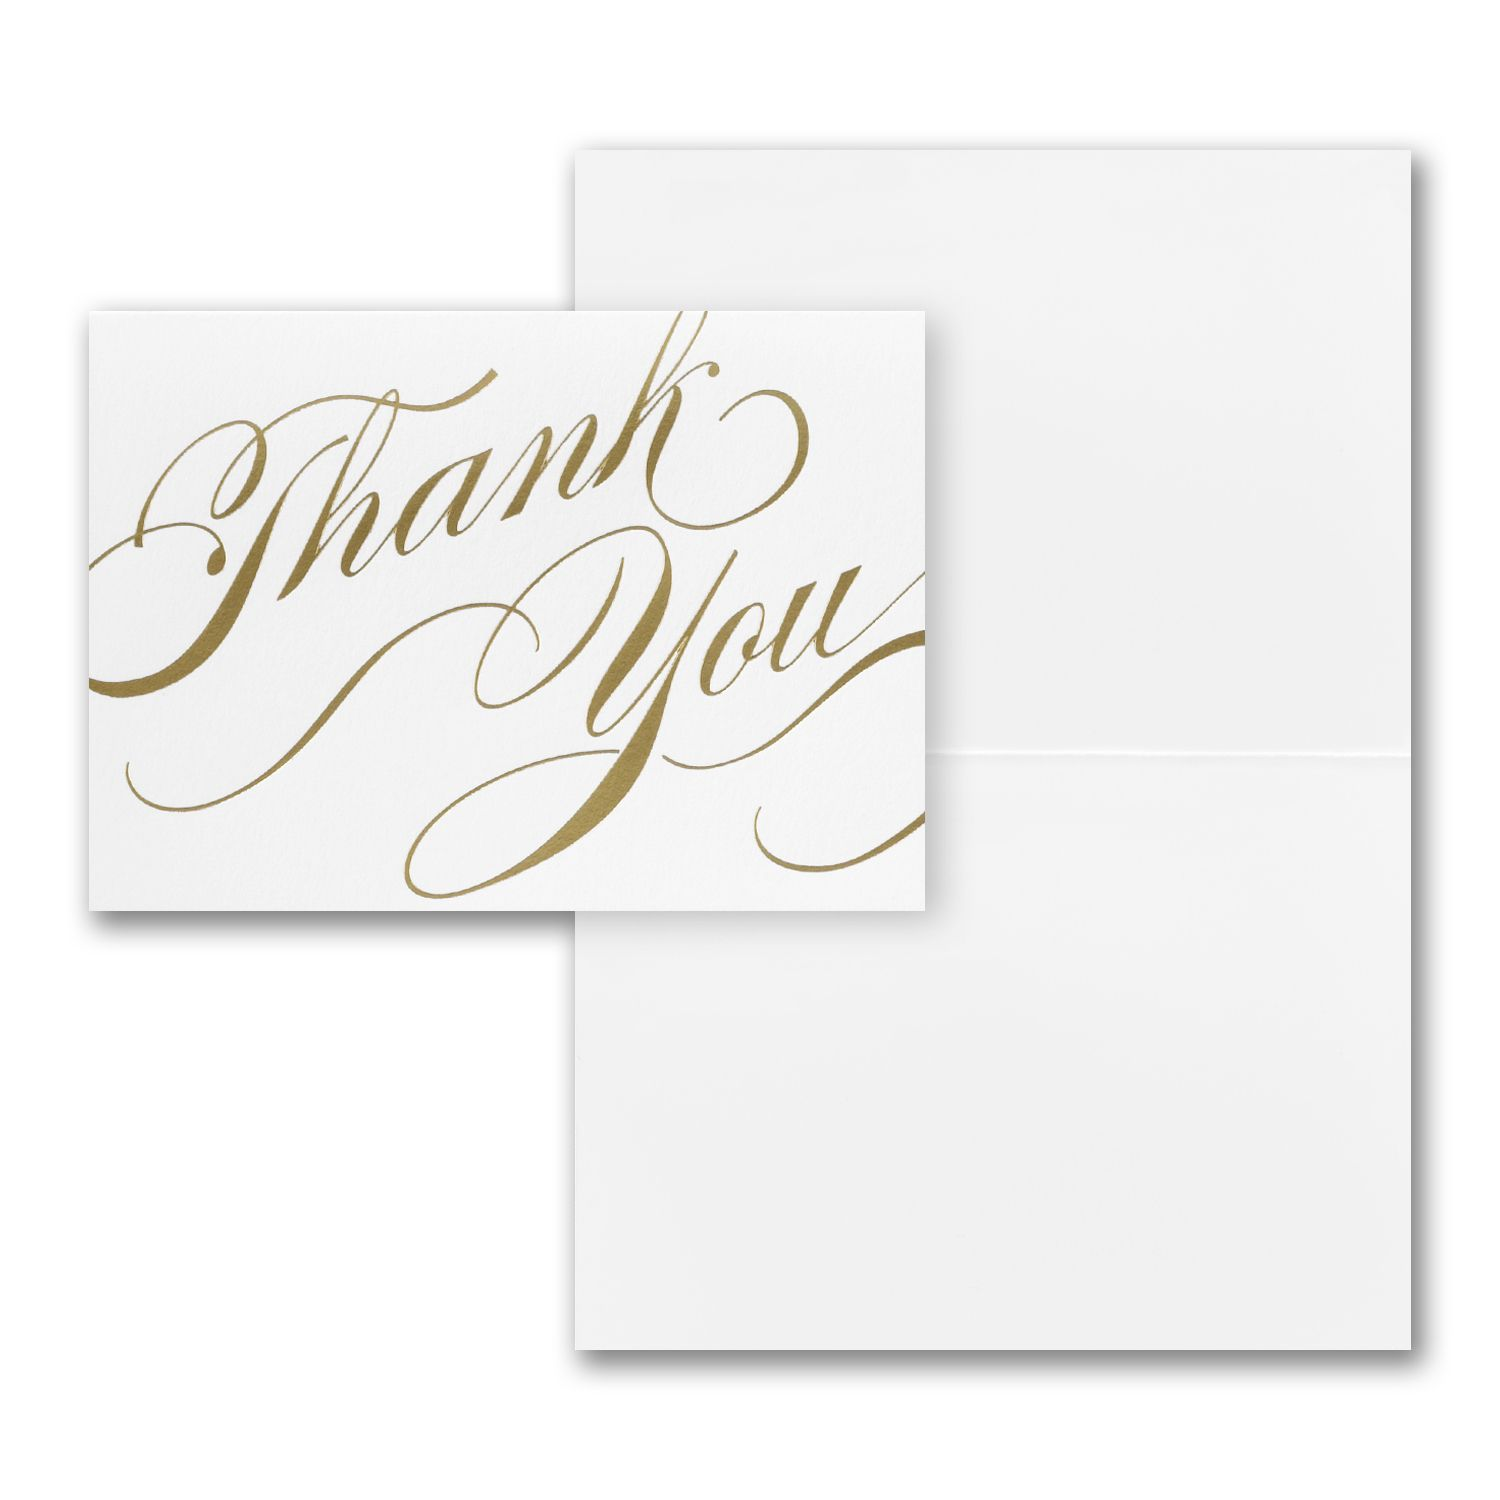 Invitations Blank Cards Gifts Leaves Embossed Note Card Thank You Notes